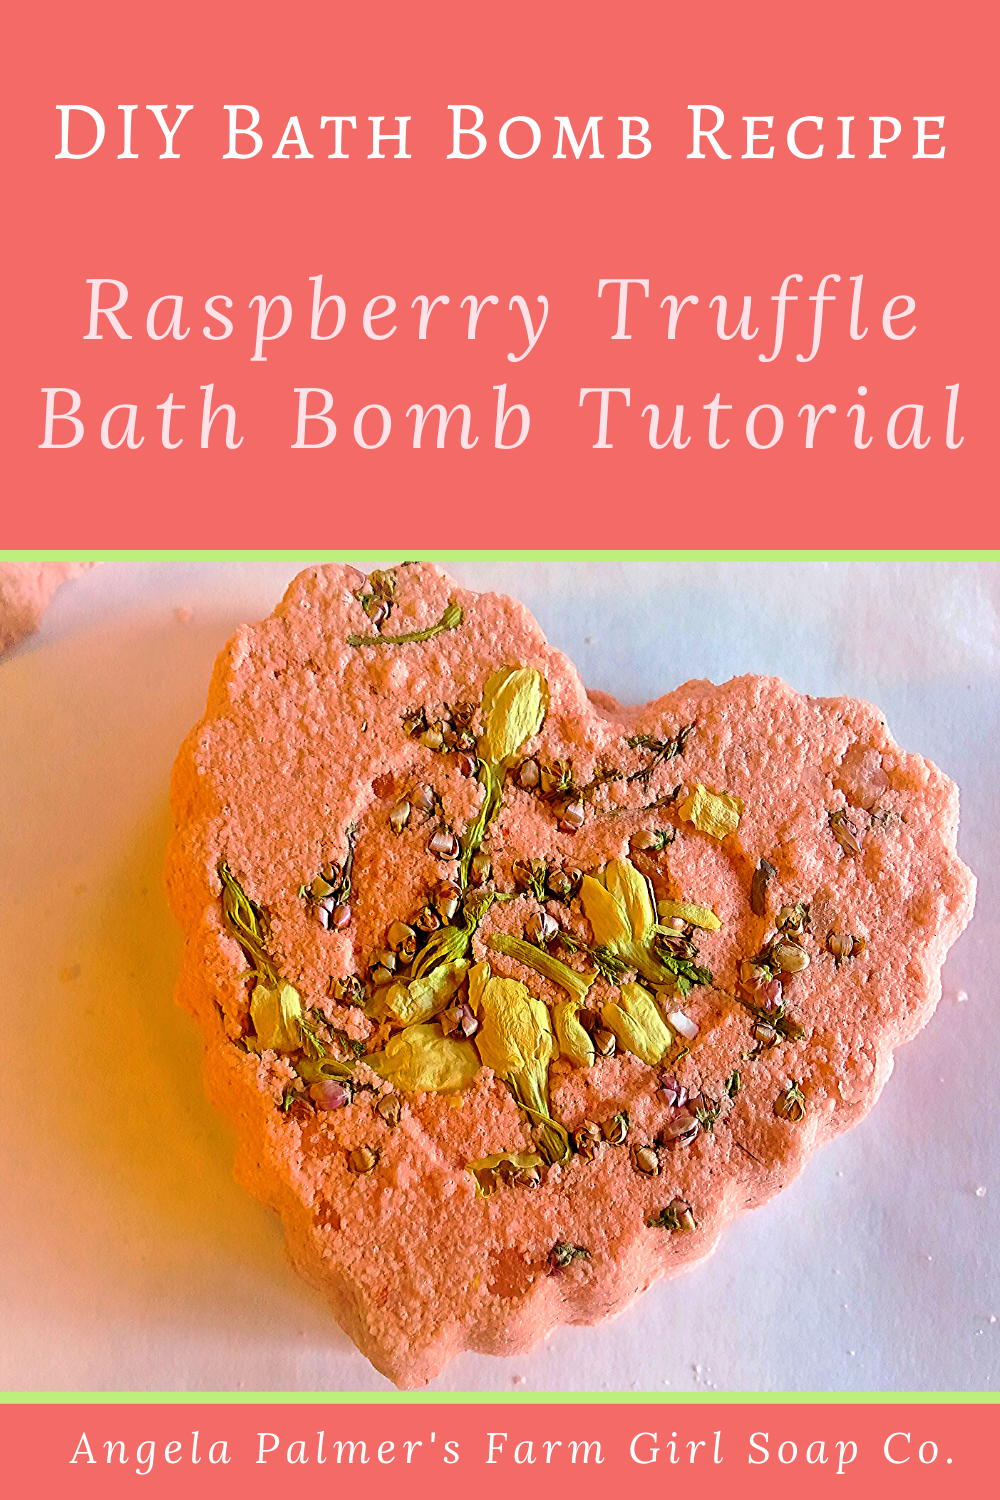 This DIY bath bomb recipe smells as sweet as it looks! Learn how to make these darling Raspberry Truffle bath bombs with this easy DIY bath bomb tutorial.